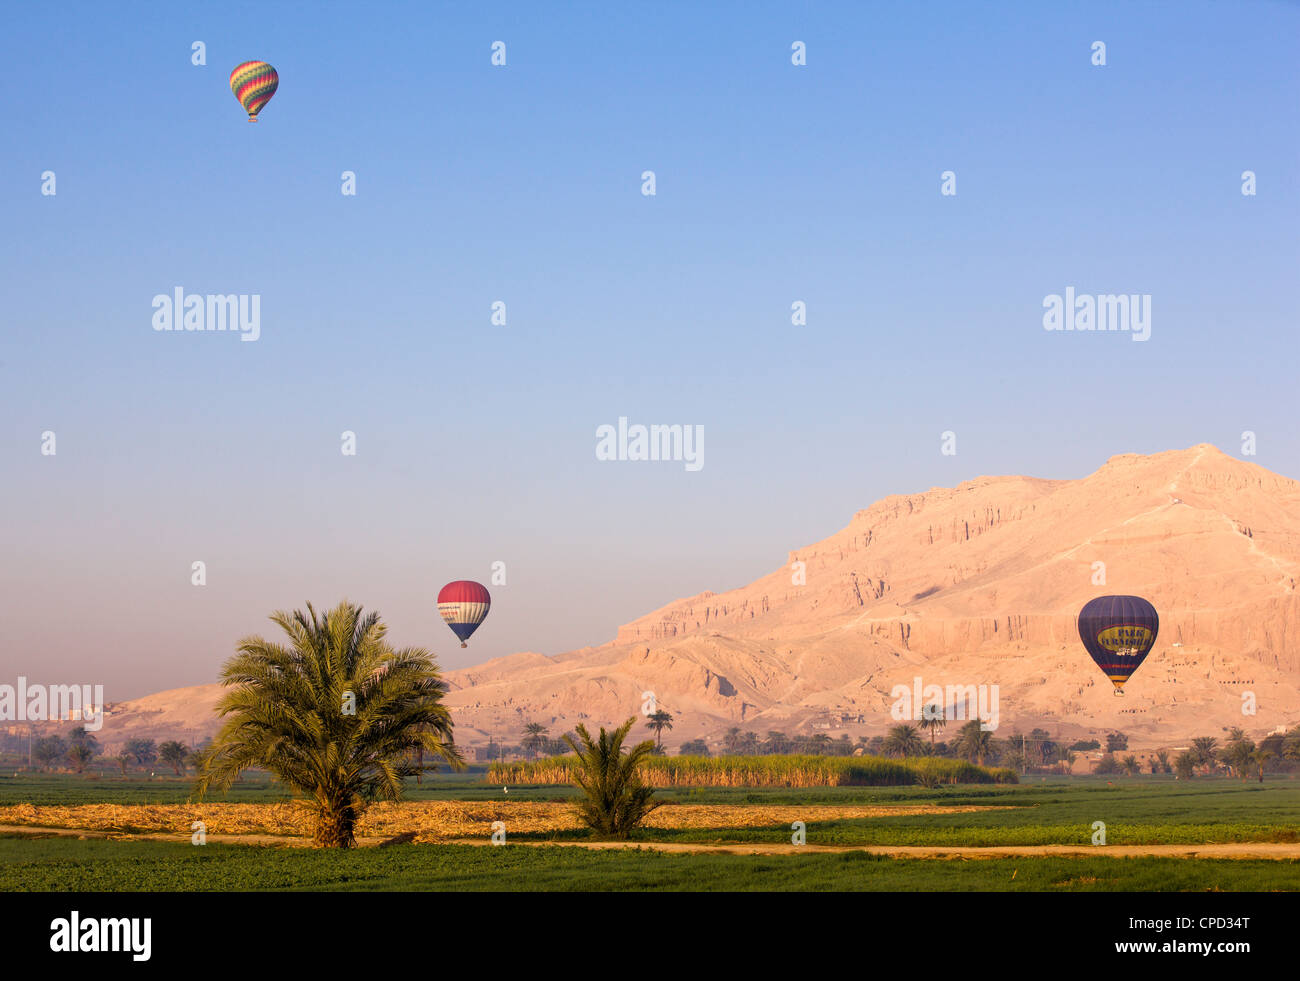 Hot air balloons suspended over green fields and palm trees near Luxor, Thebes, Egypt, North Africa, Africa - Stock Image